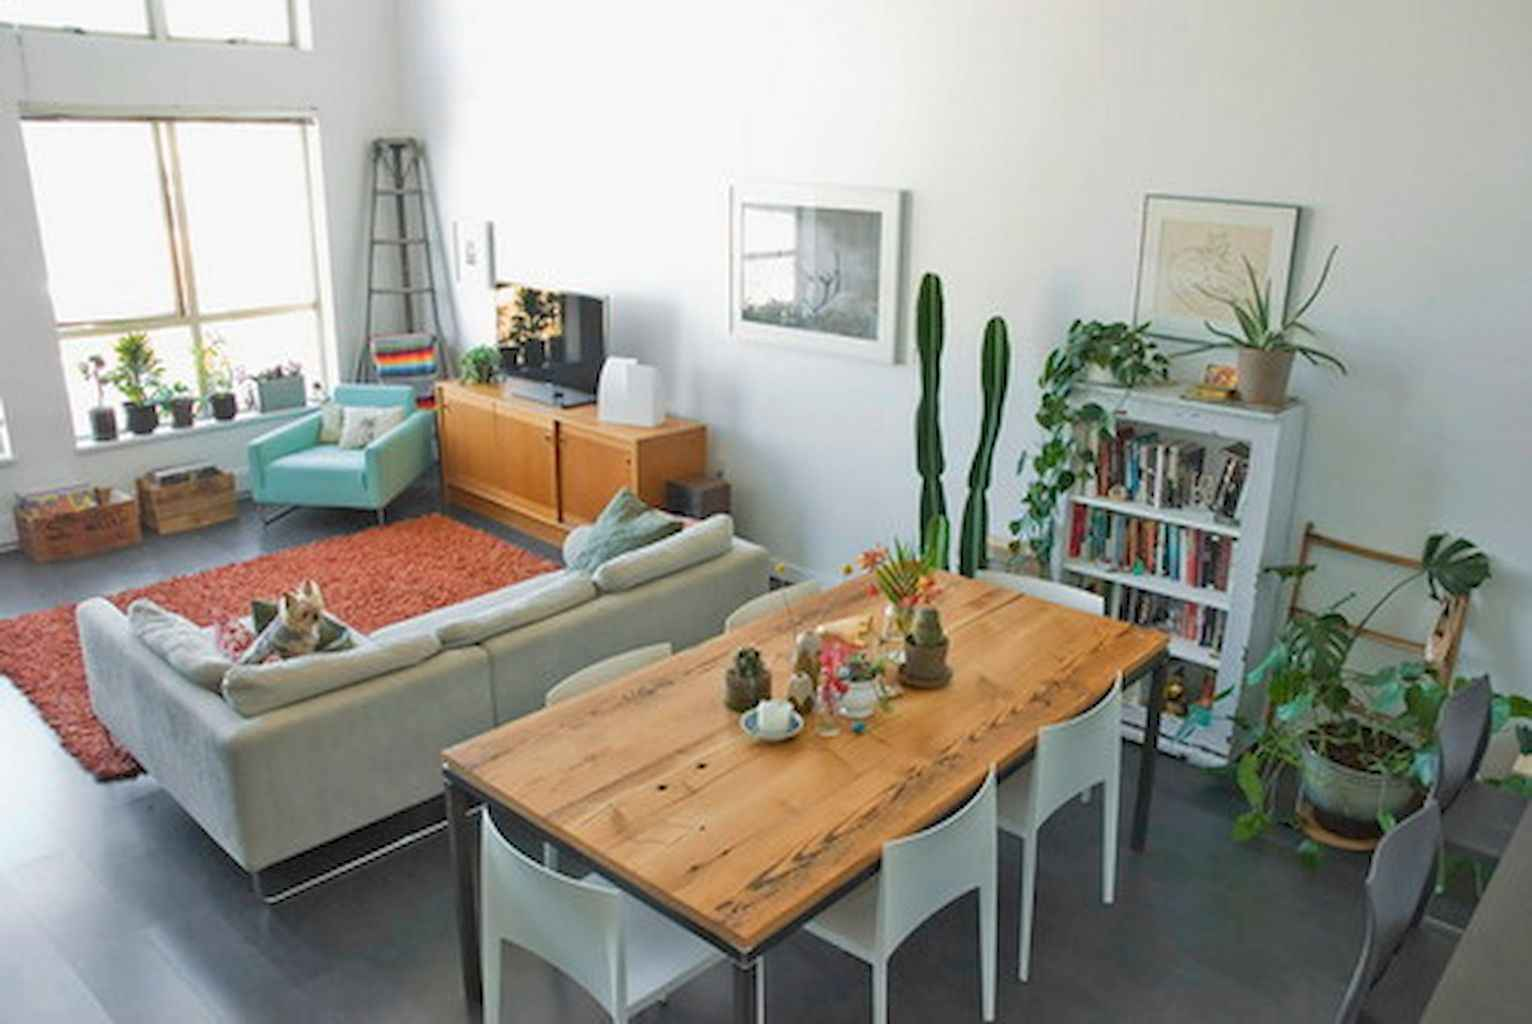 Cool small apartment decorating ideas on a budget (17)